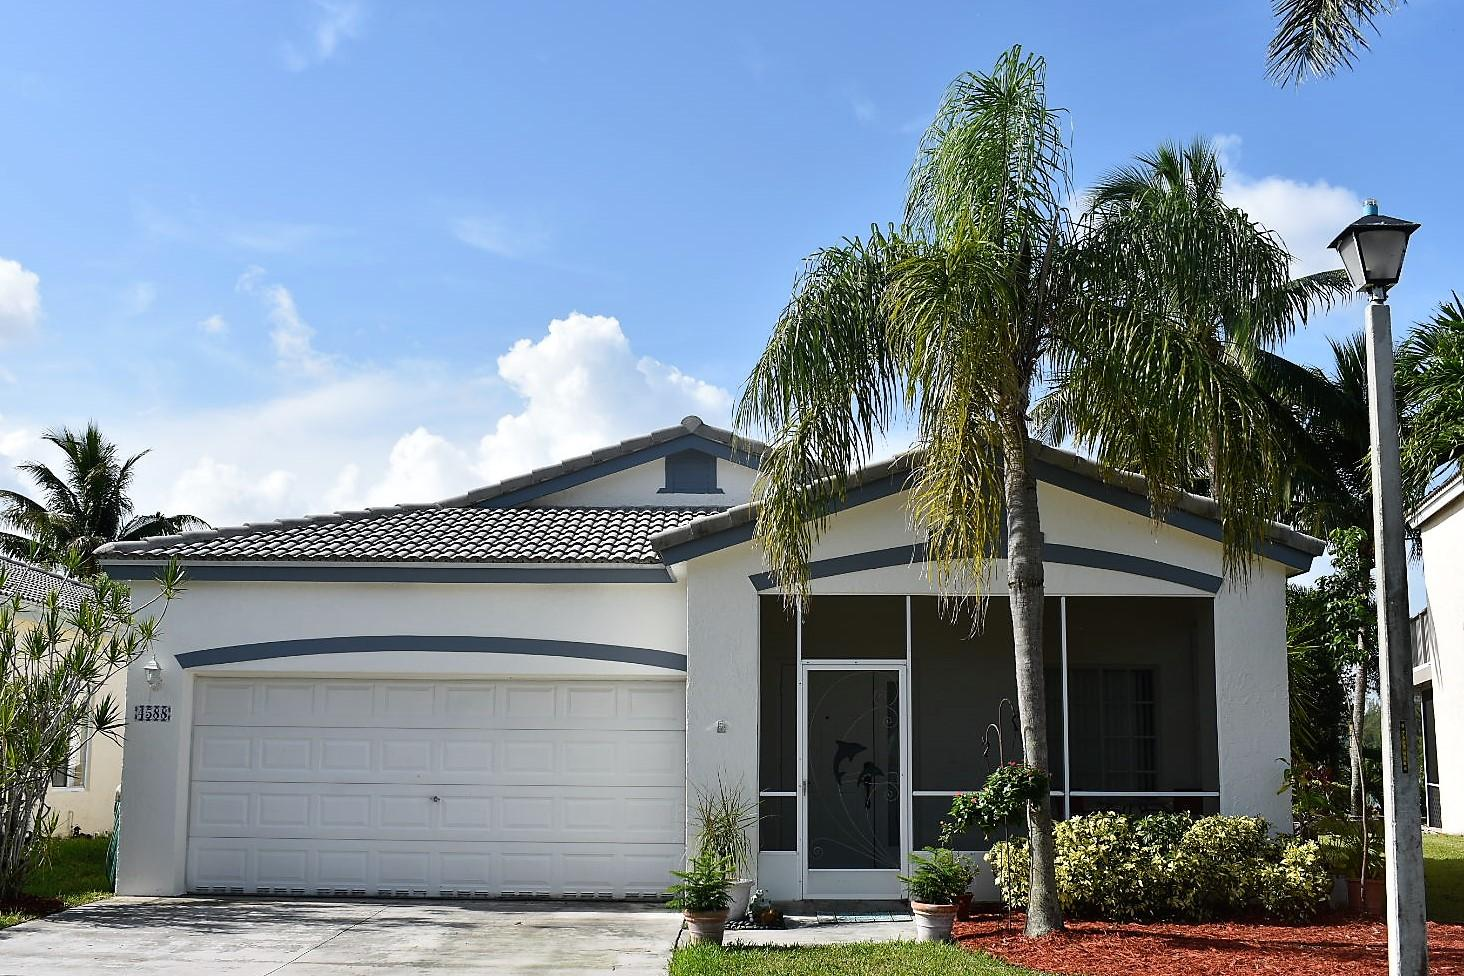 Home for sale in Waterways/lakeview Deerfield Beach Florida